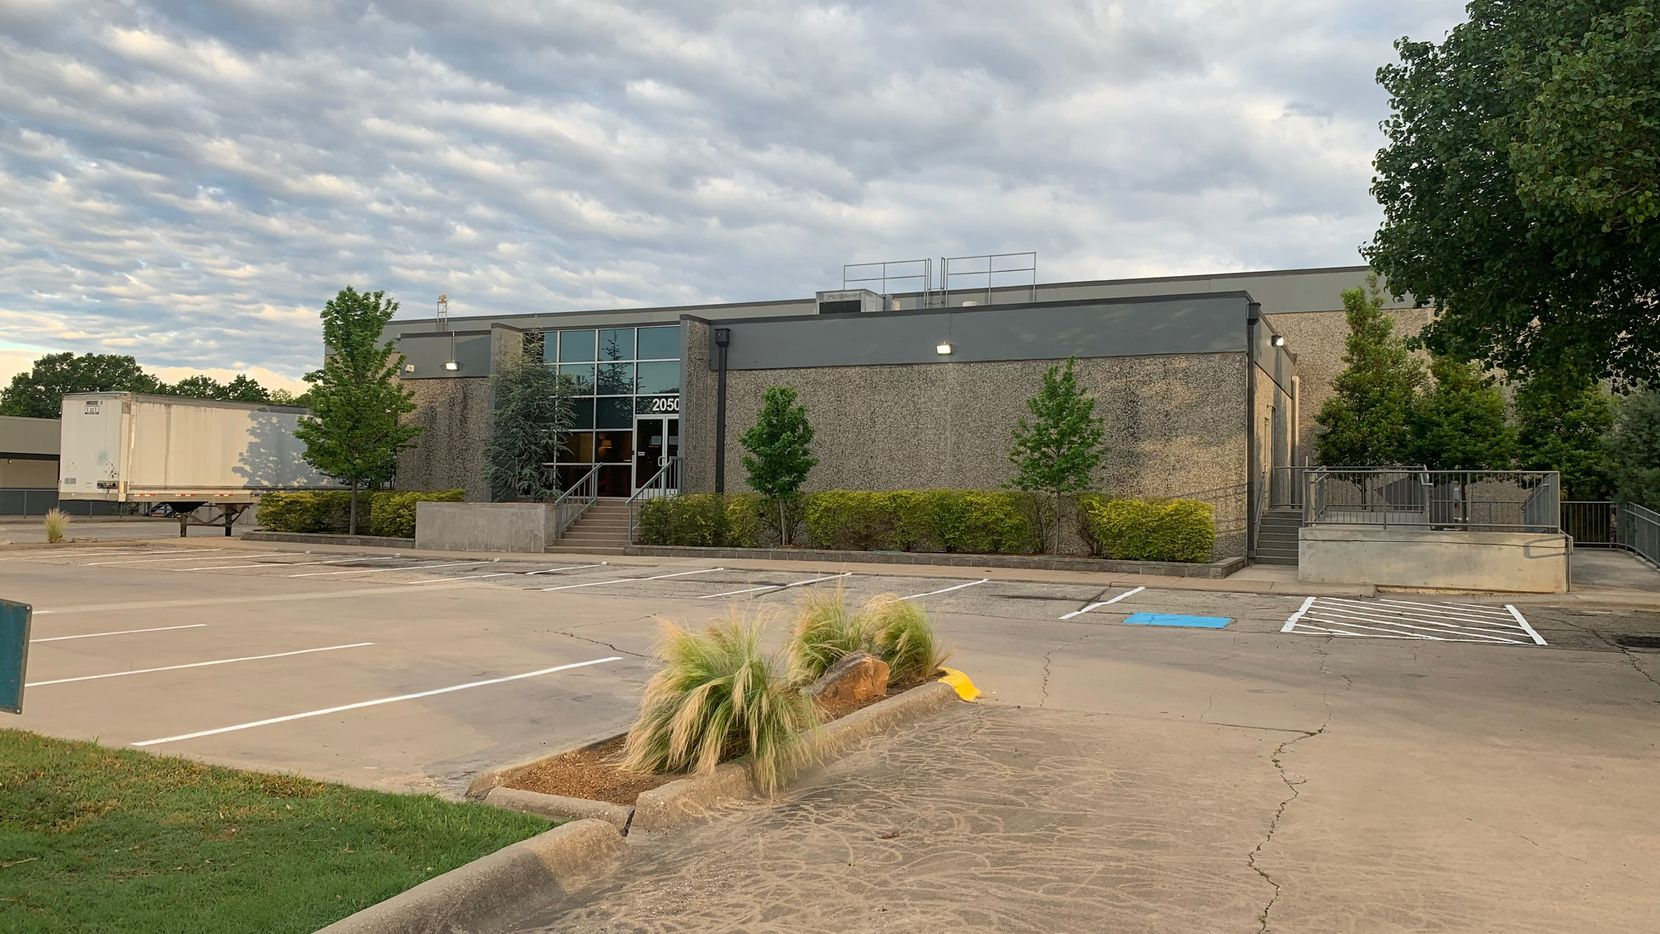 Petoskey Plastics, a Michigan-based recycling and plastics products firm, purchased a  building at 2050 Couch Drive in McKinney.